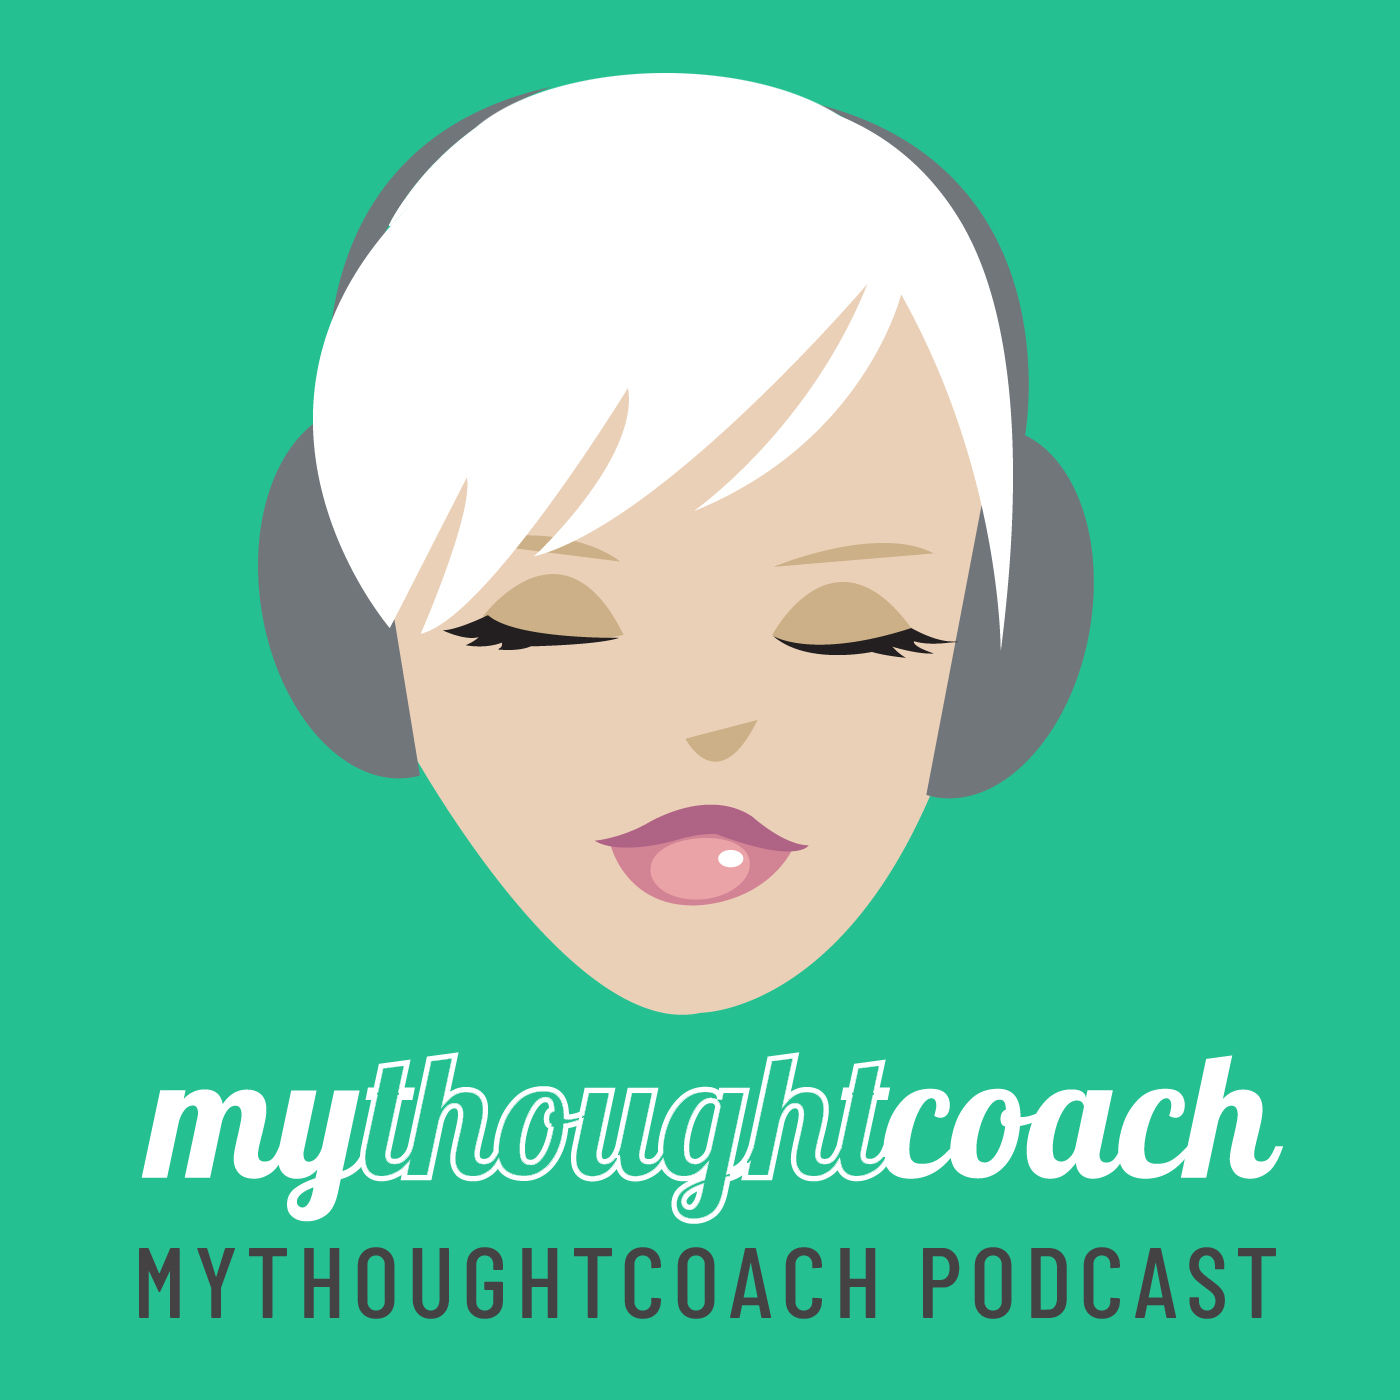 My Thought Coach